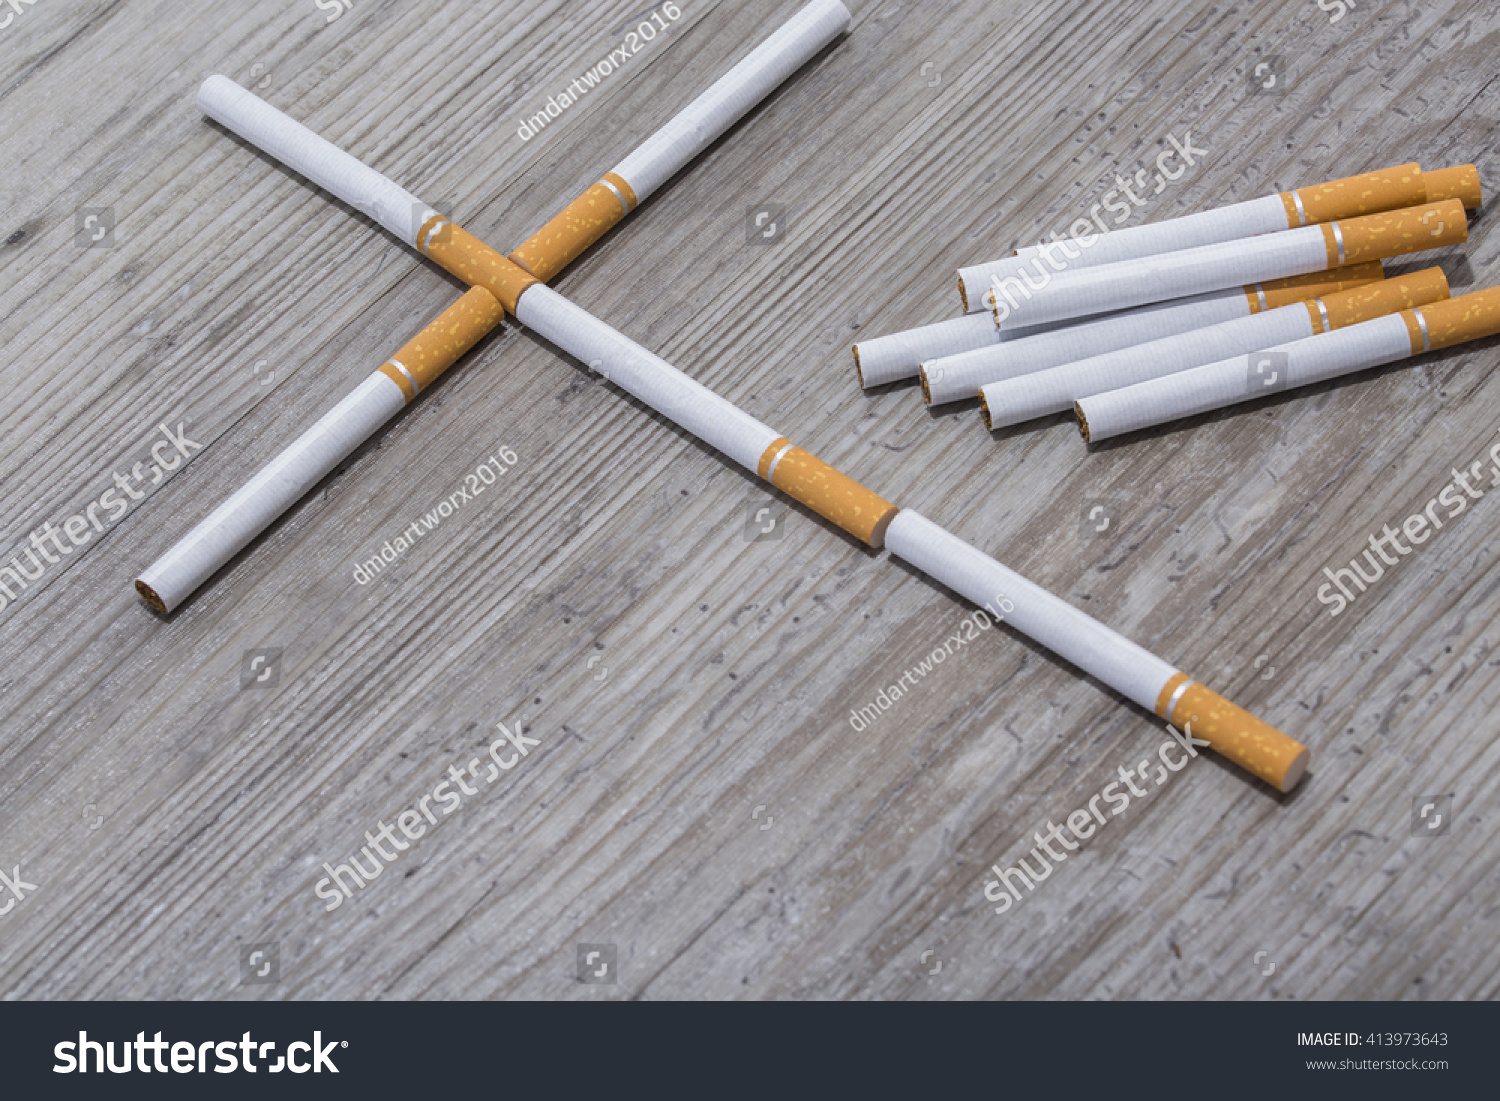 Amazing photo of Cigarettes Cross On Wooden Background Stock Photo 413973643  with #996B32 color and 1500x1101 pixels